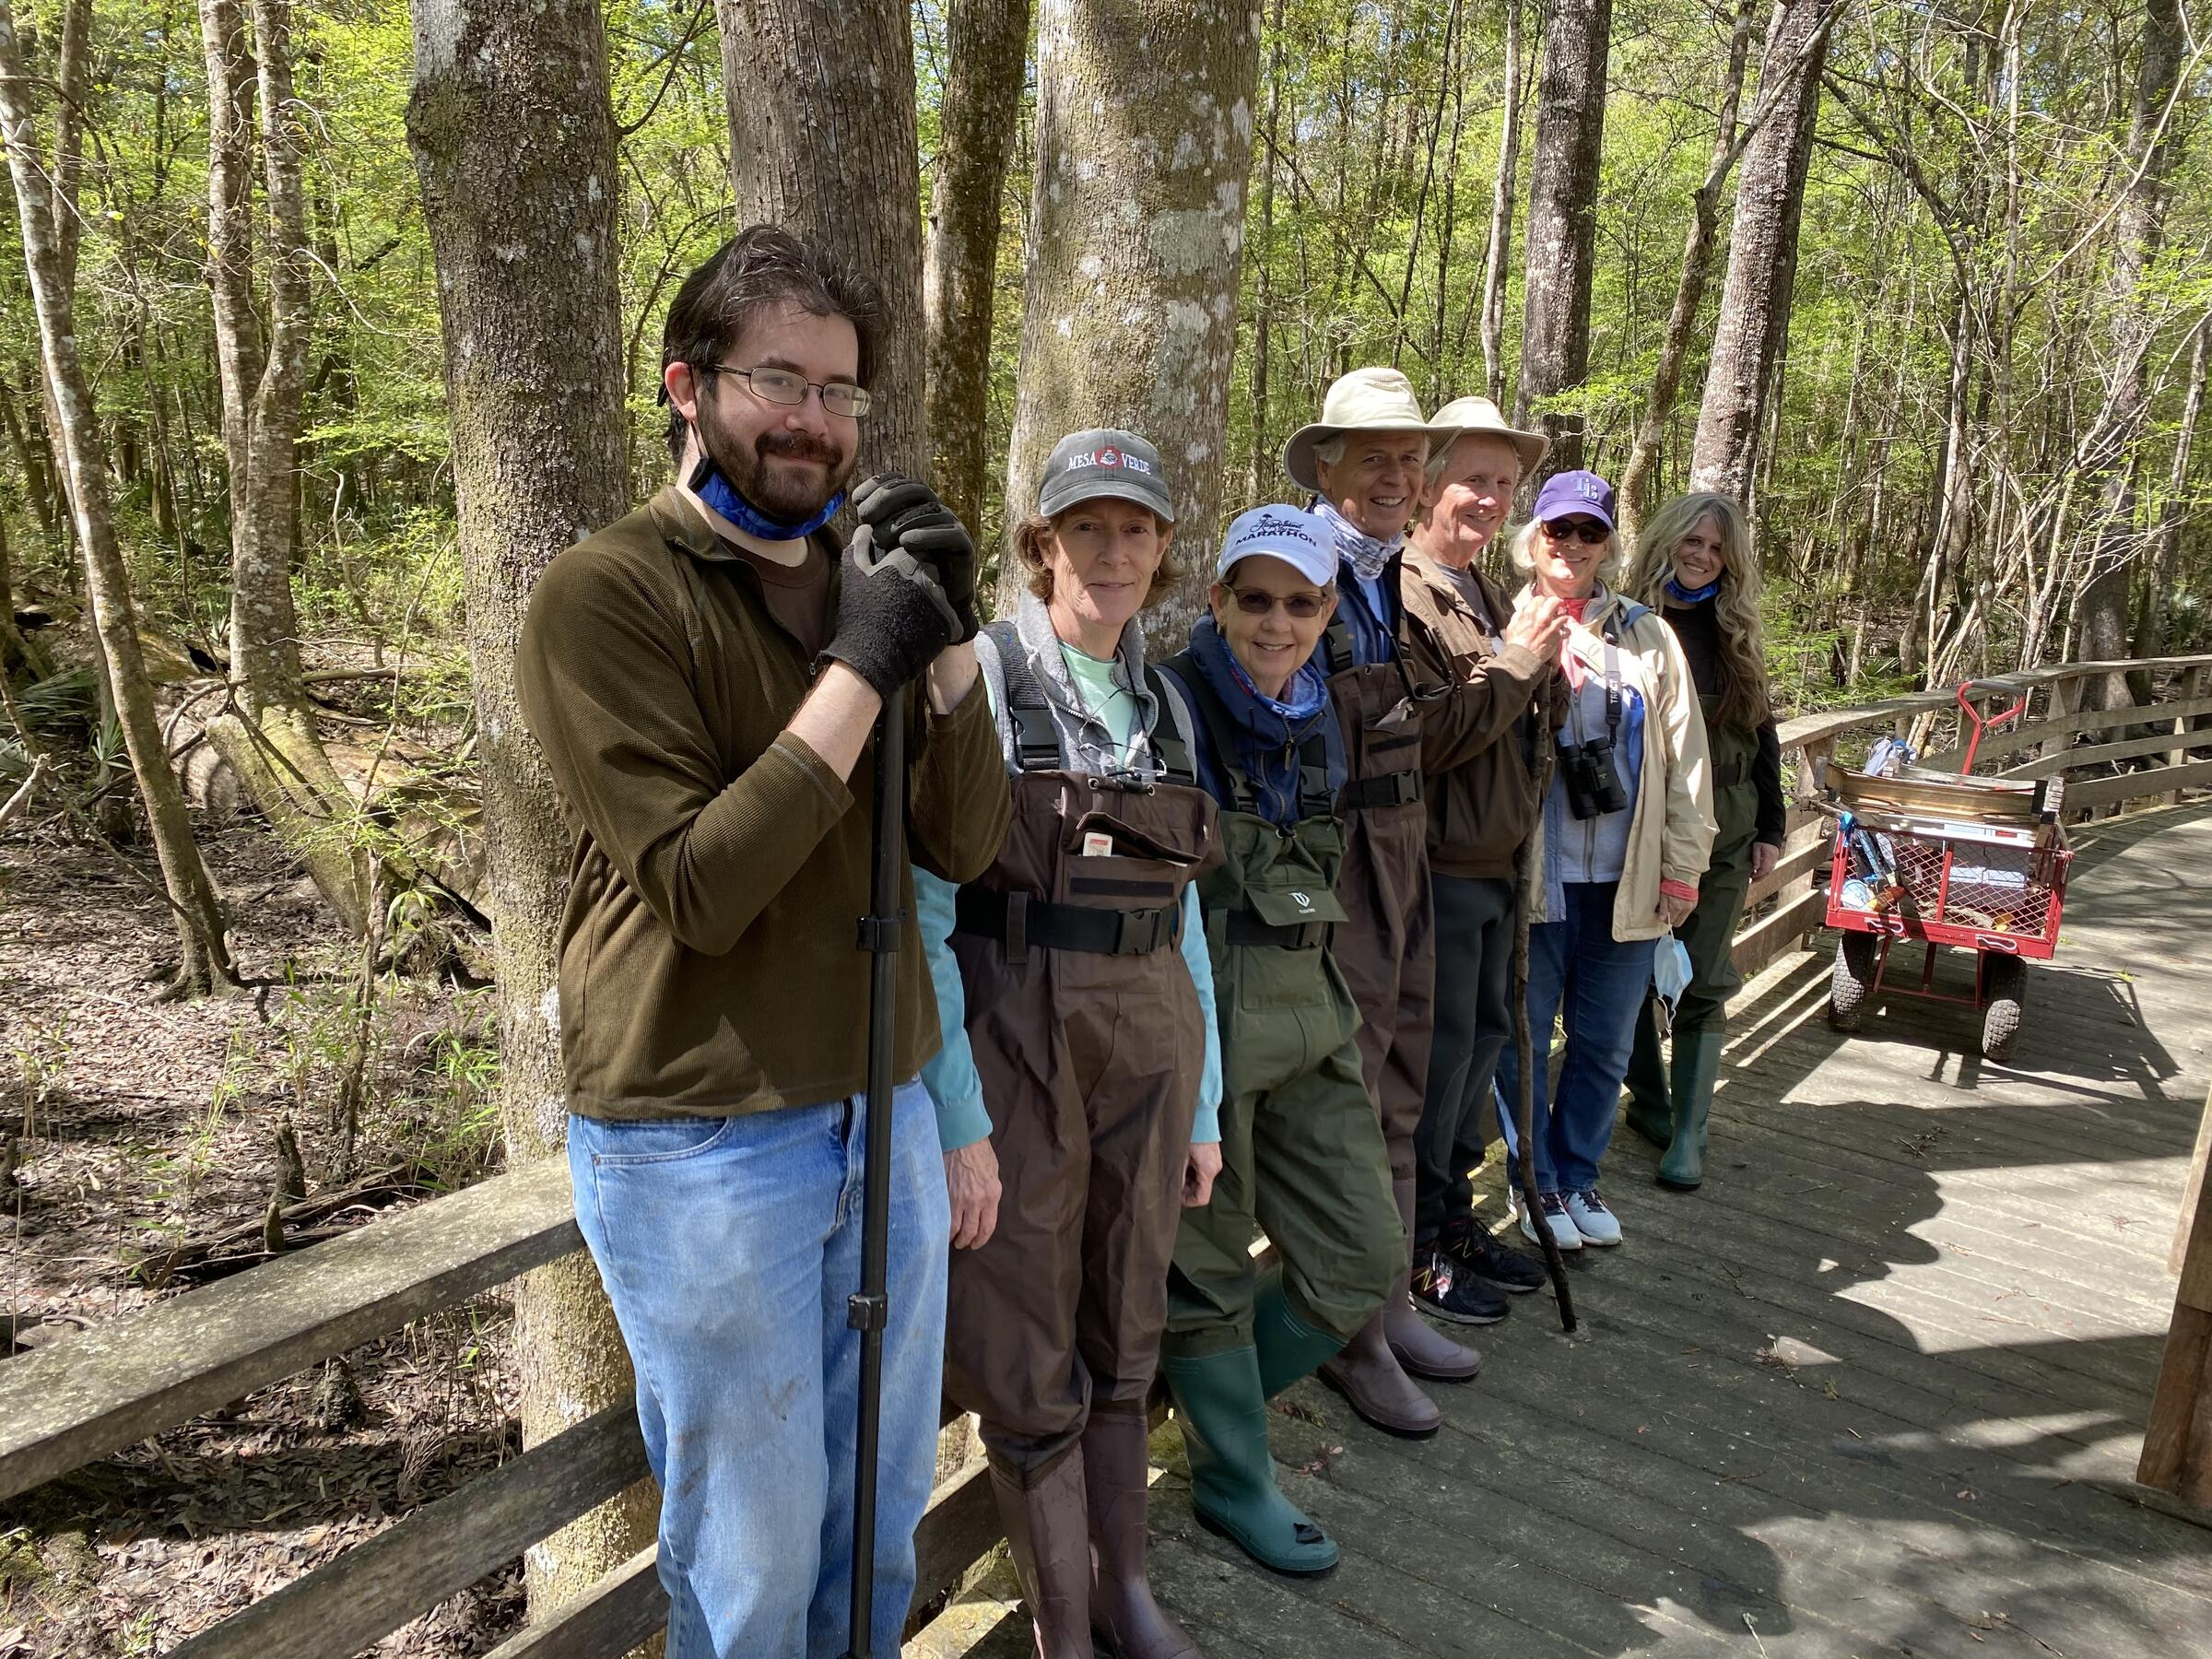 Seven people are lined up against the side of a boardwalk, some wearing waders and others wearing jeans. A red wagon with a ladder is in the distance and lush green forest behind the line of volunteers.